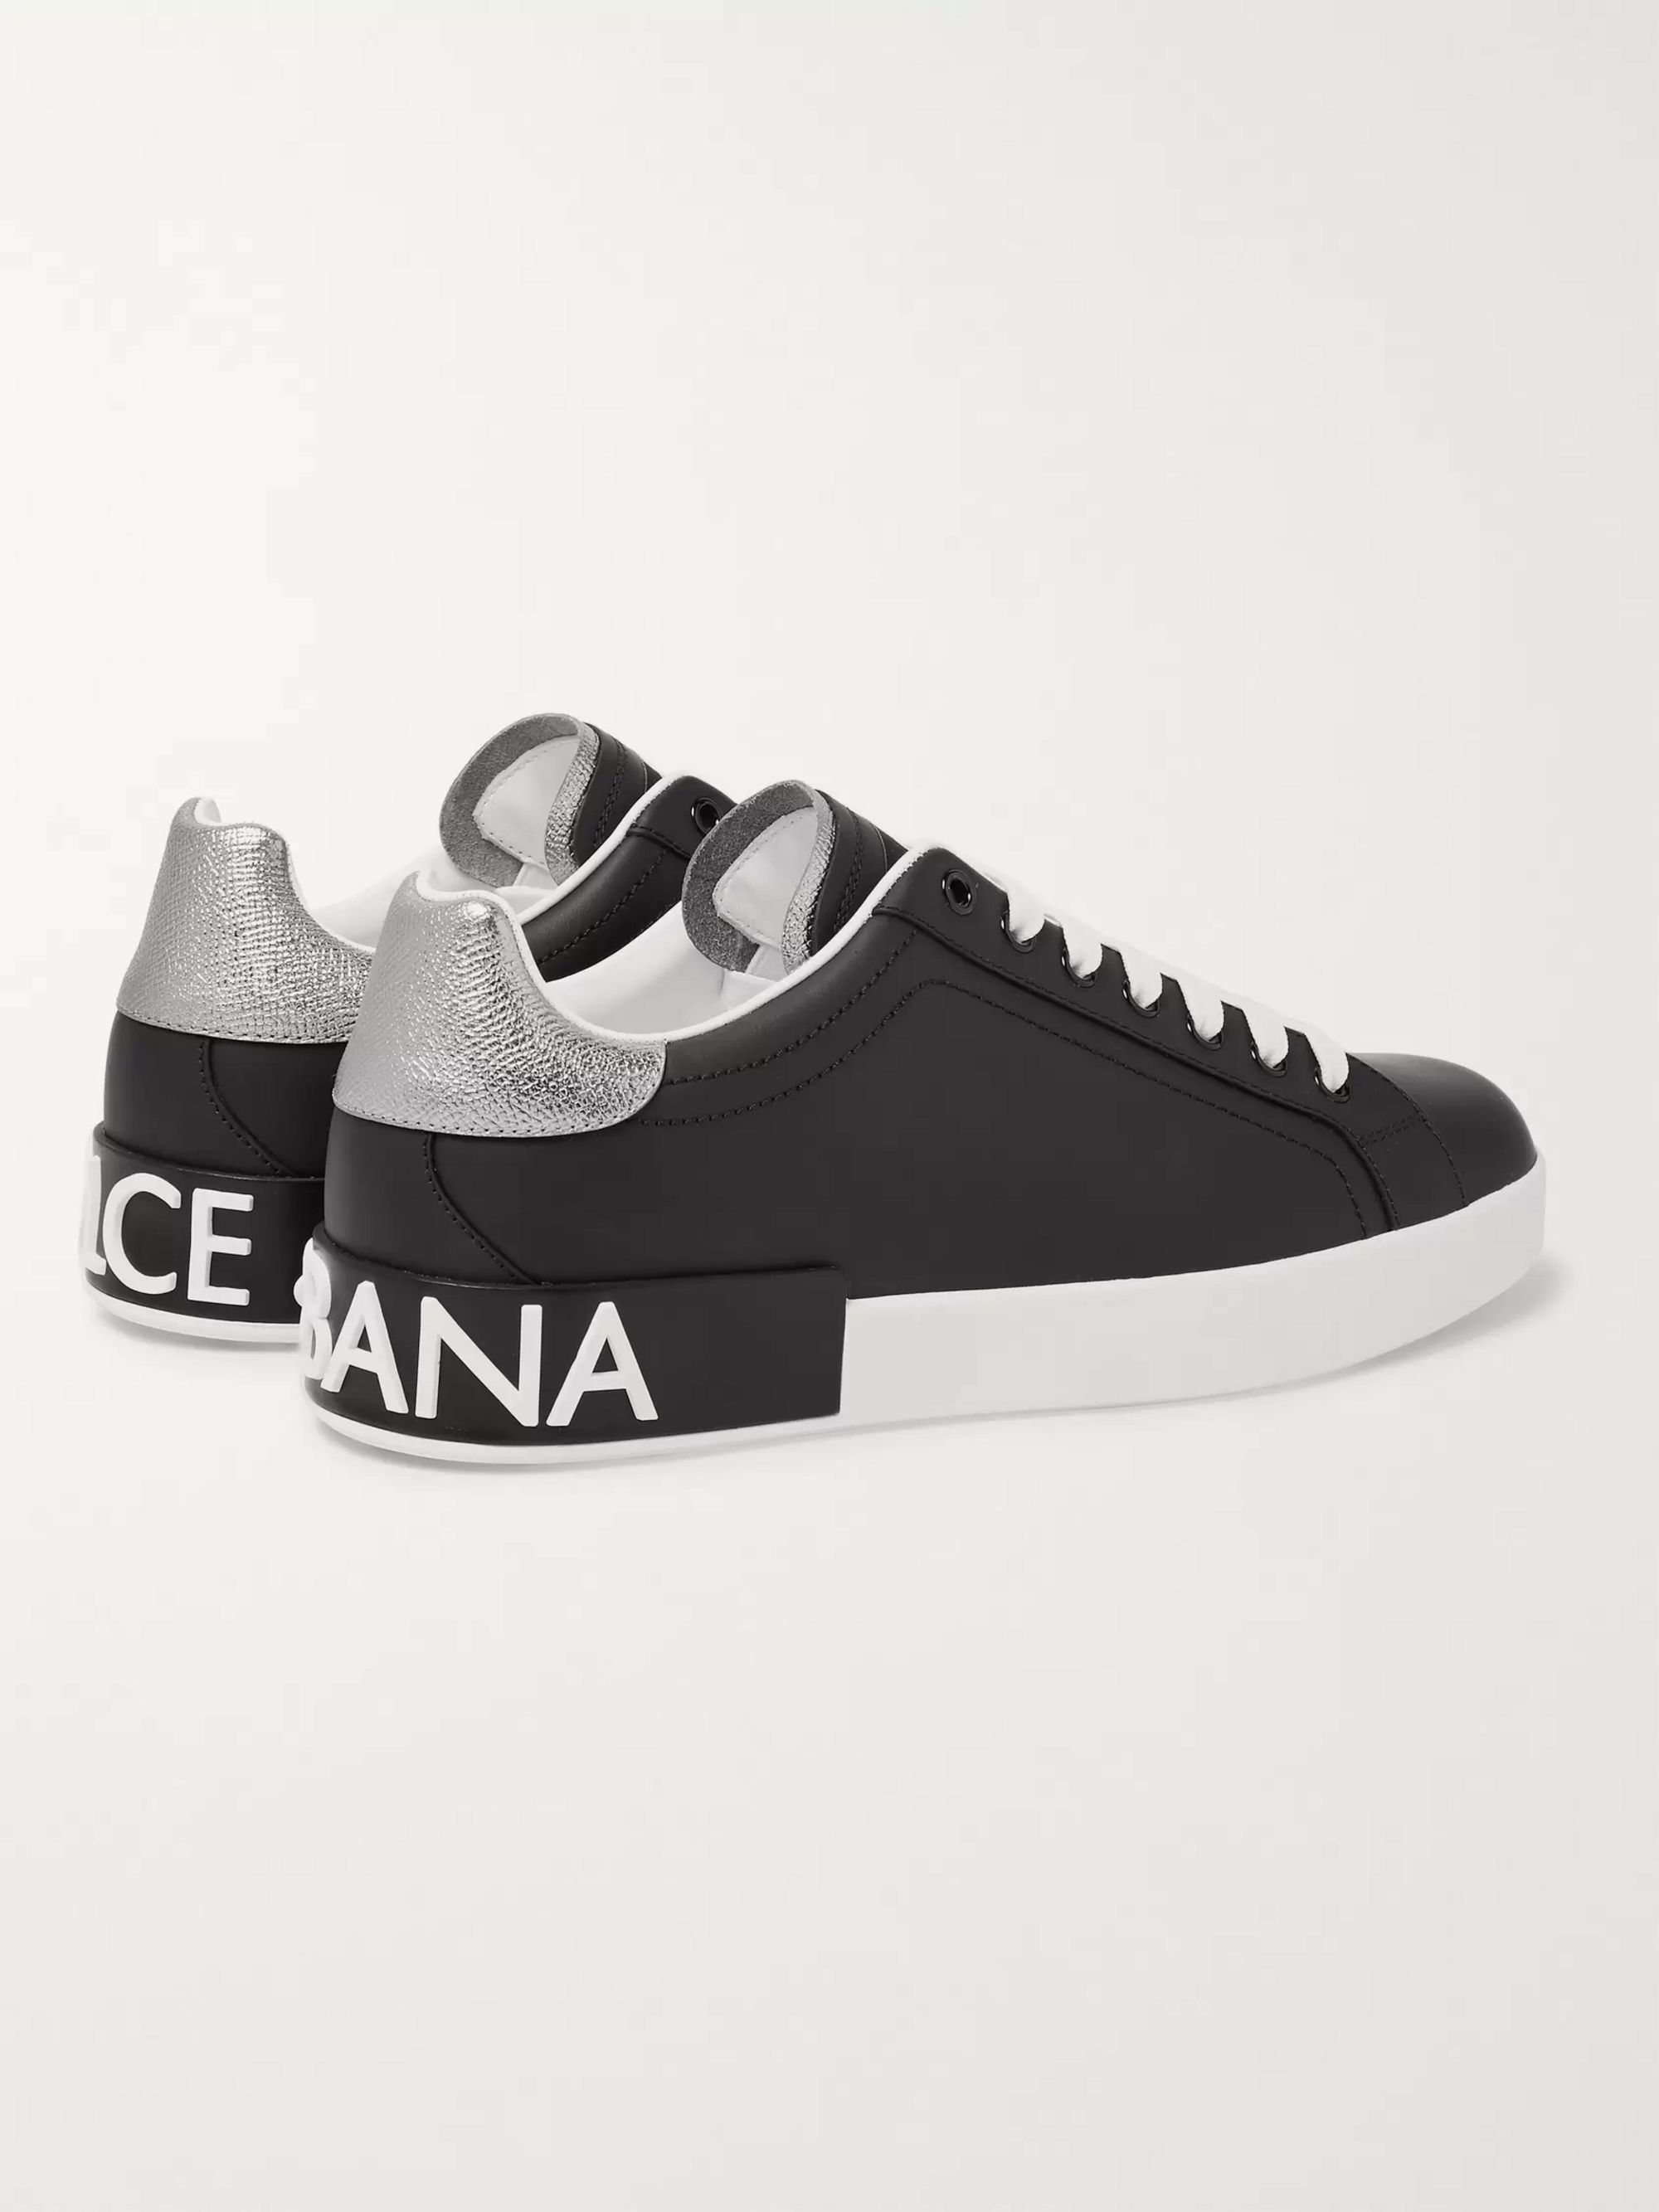 Dolce & Gabbana Logo-Detailed Metallic-Trimmed Leather Sneakers